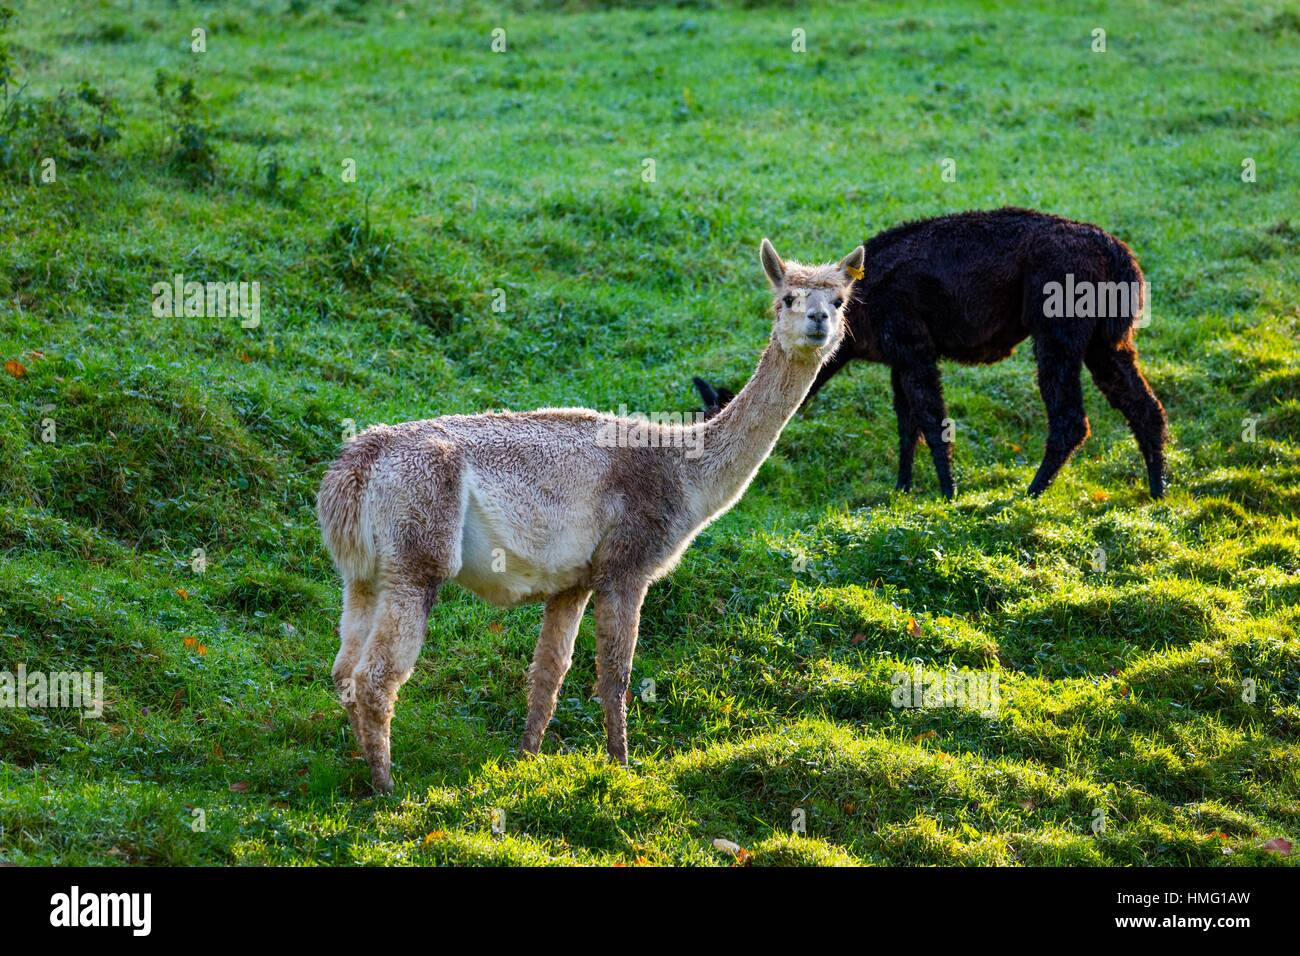 ALPACA (Vicugna pacos). Domesticated species of South American camelid. - Stock Image